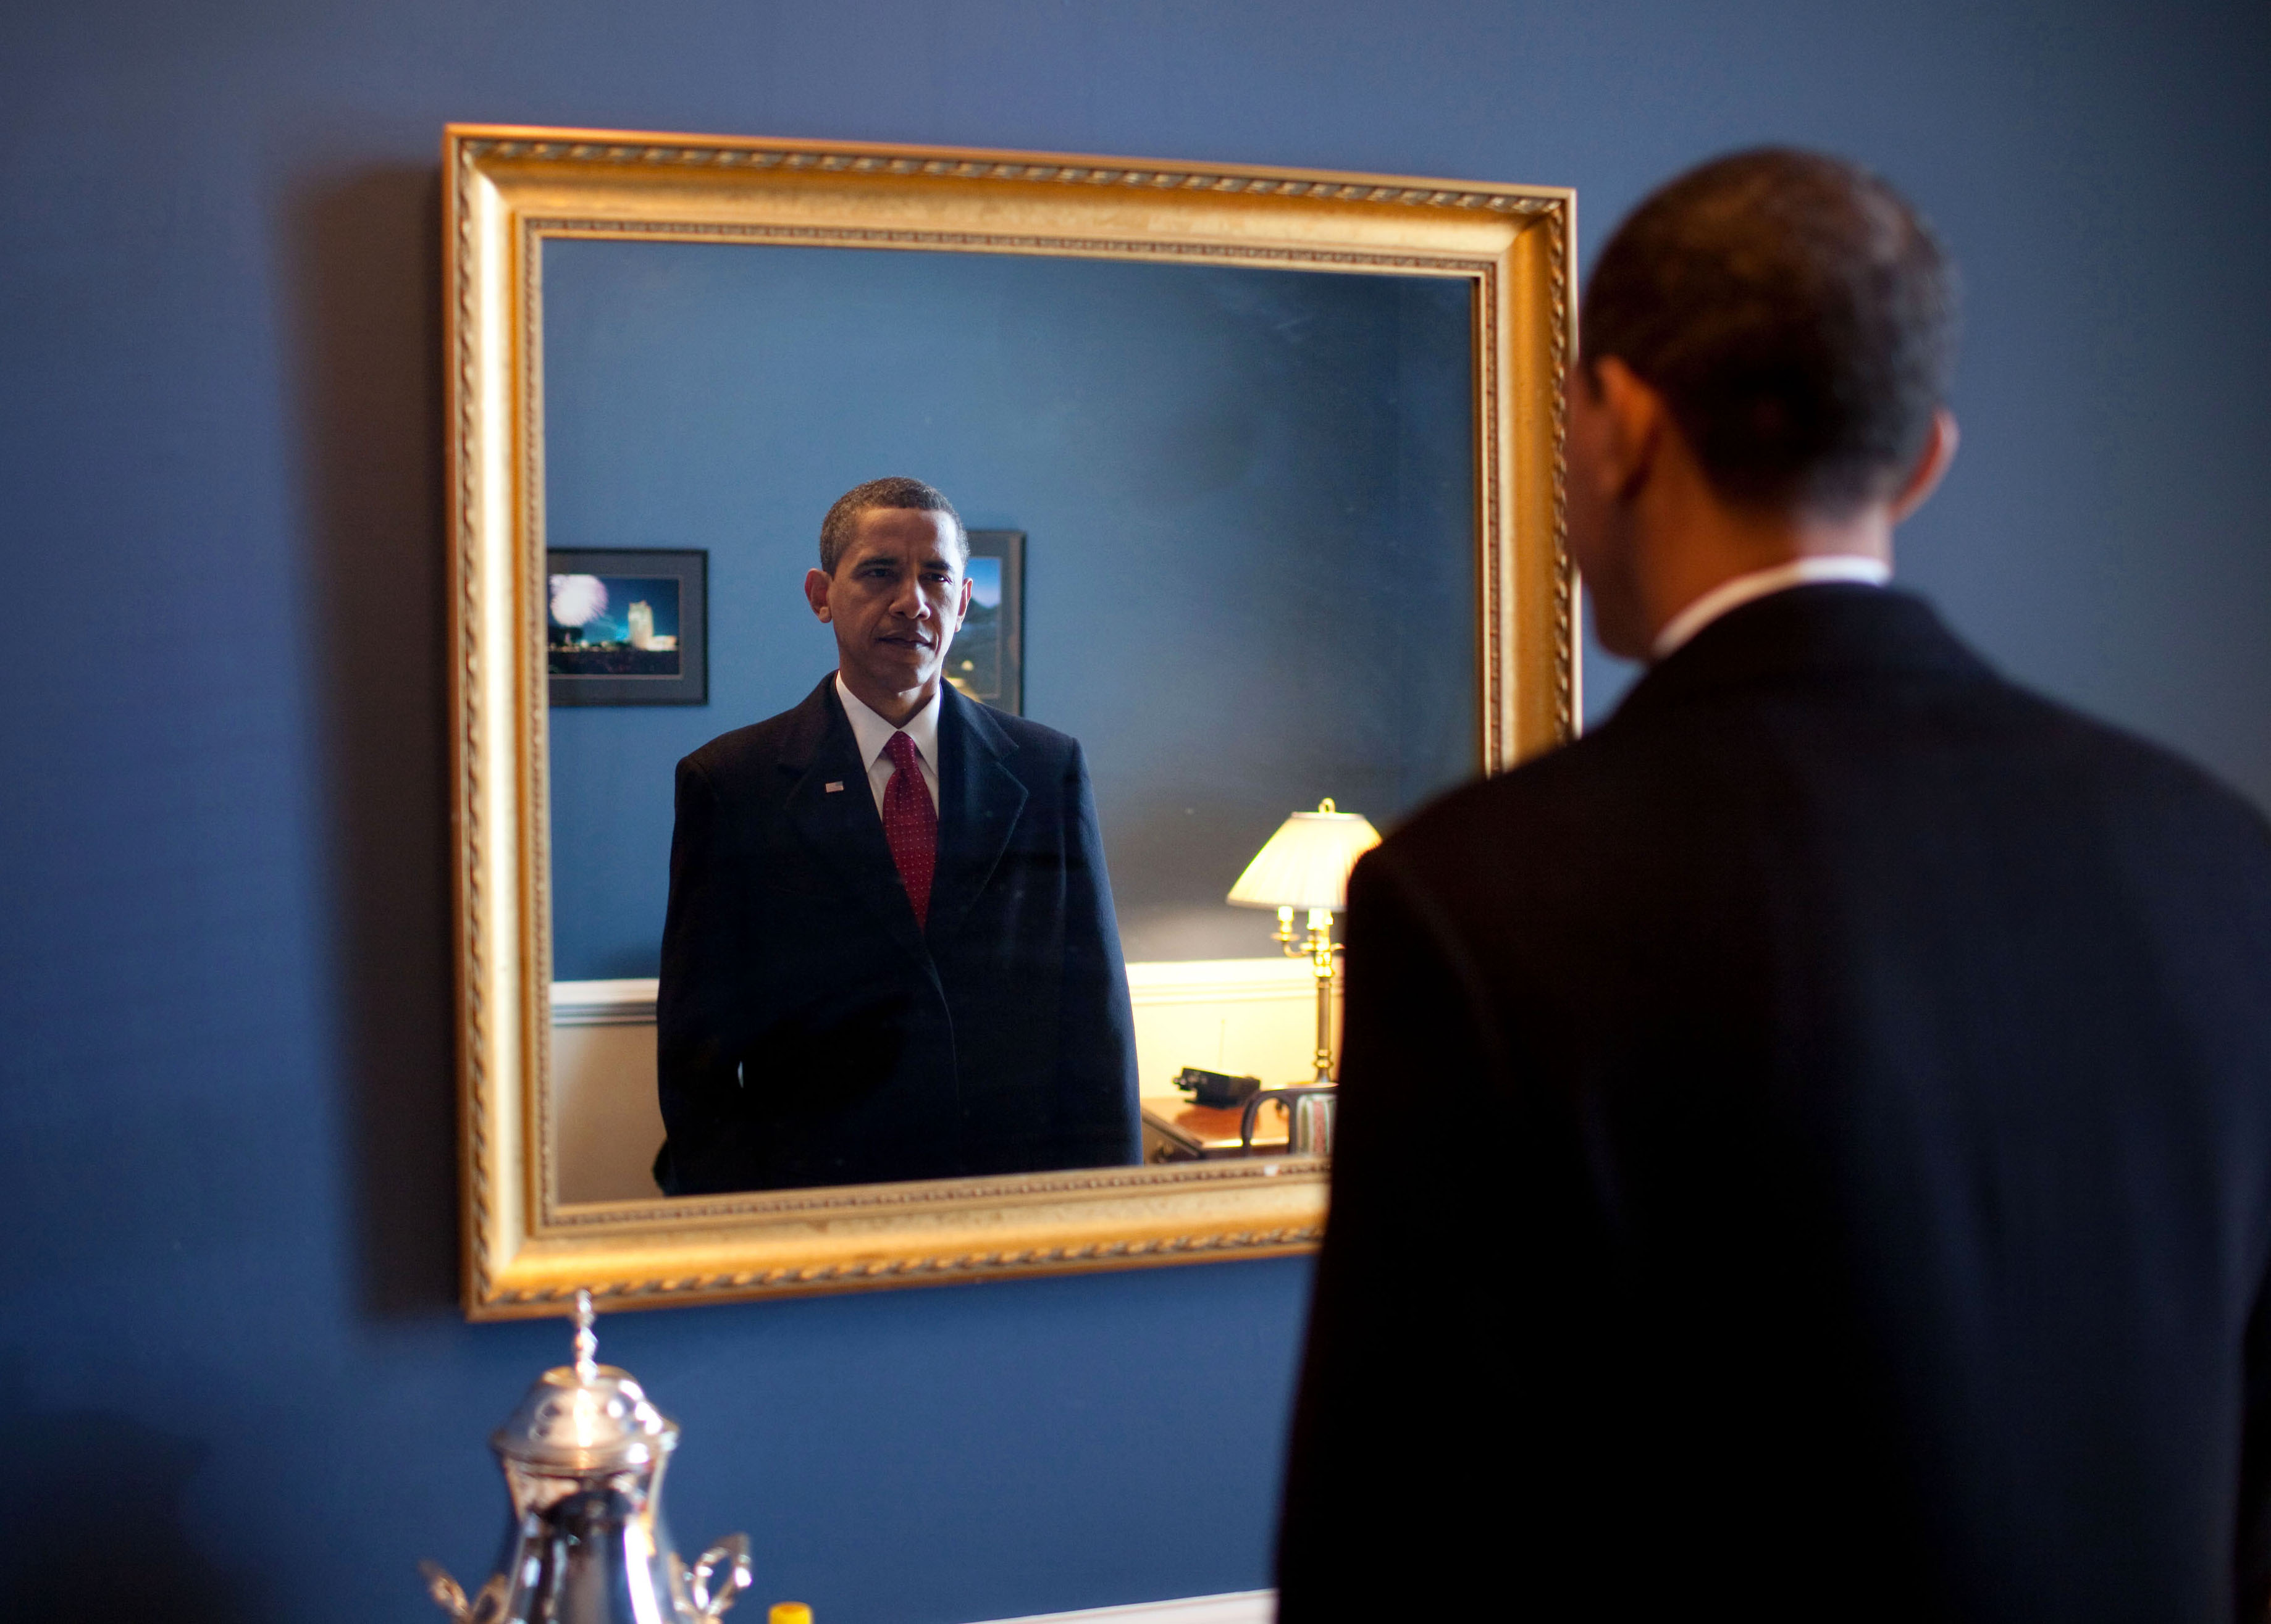 The Way I See It: A Conversation With Pete Souza